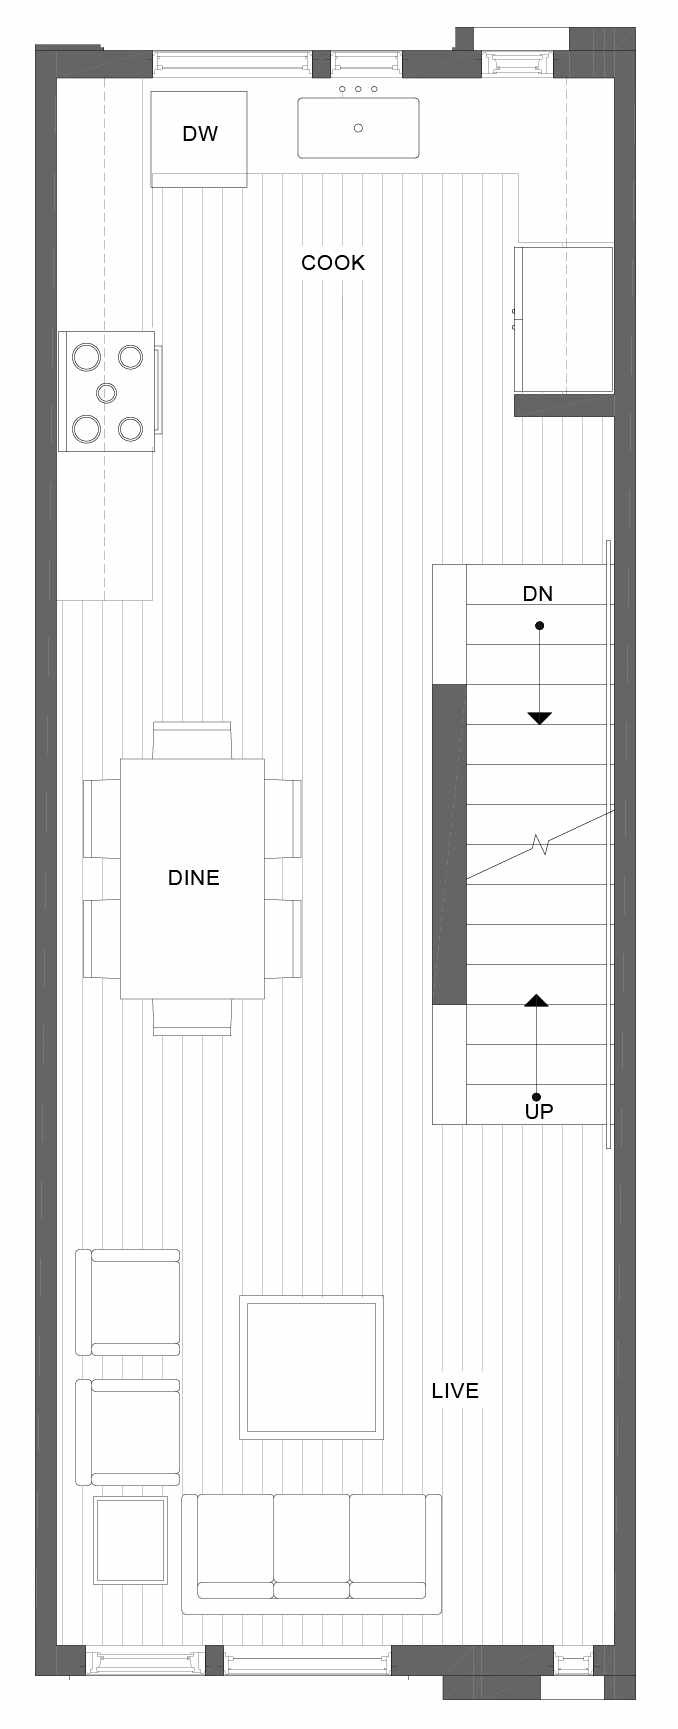 Second Floor Plan of 1101C 14th Ave in the Corazon Townhomes